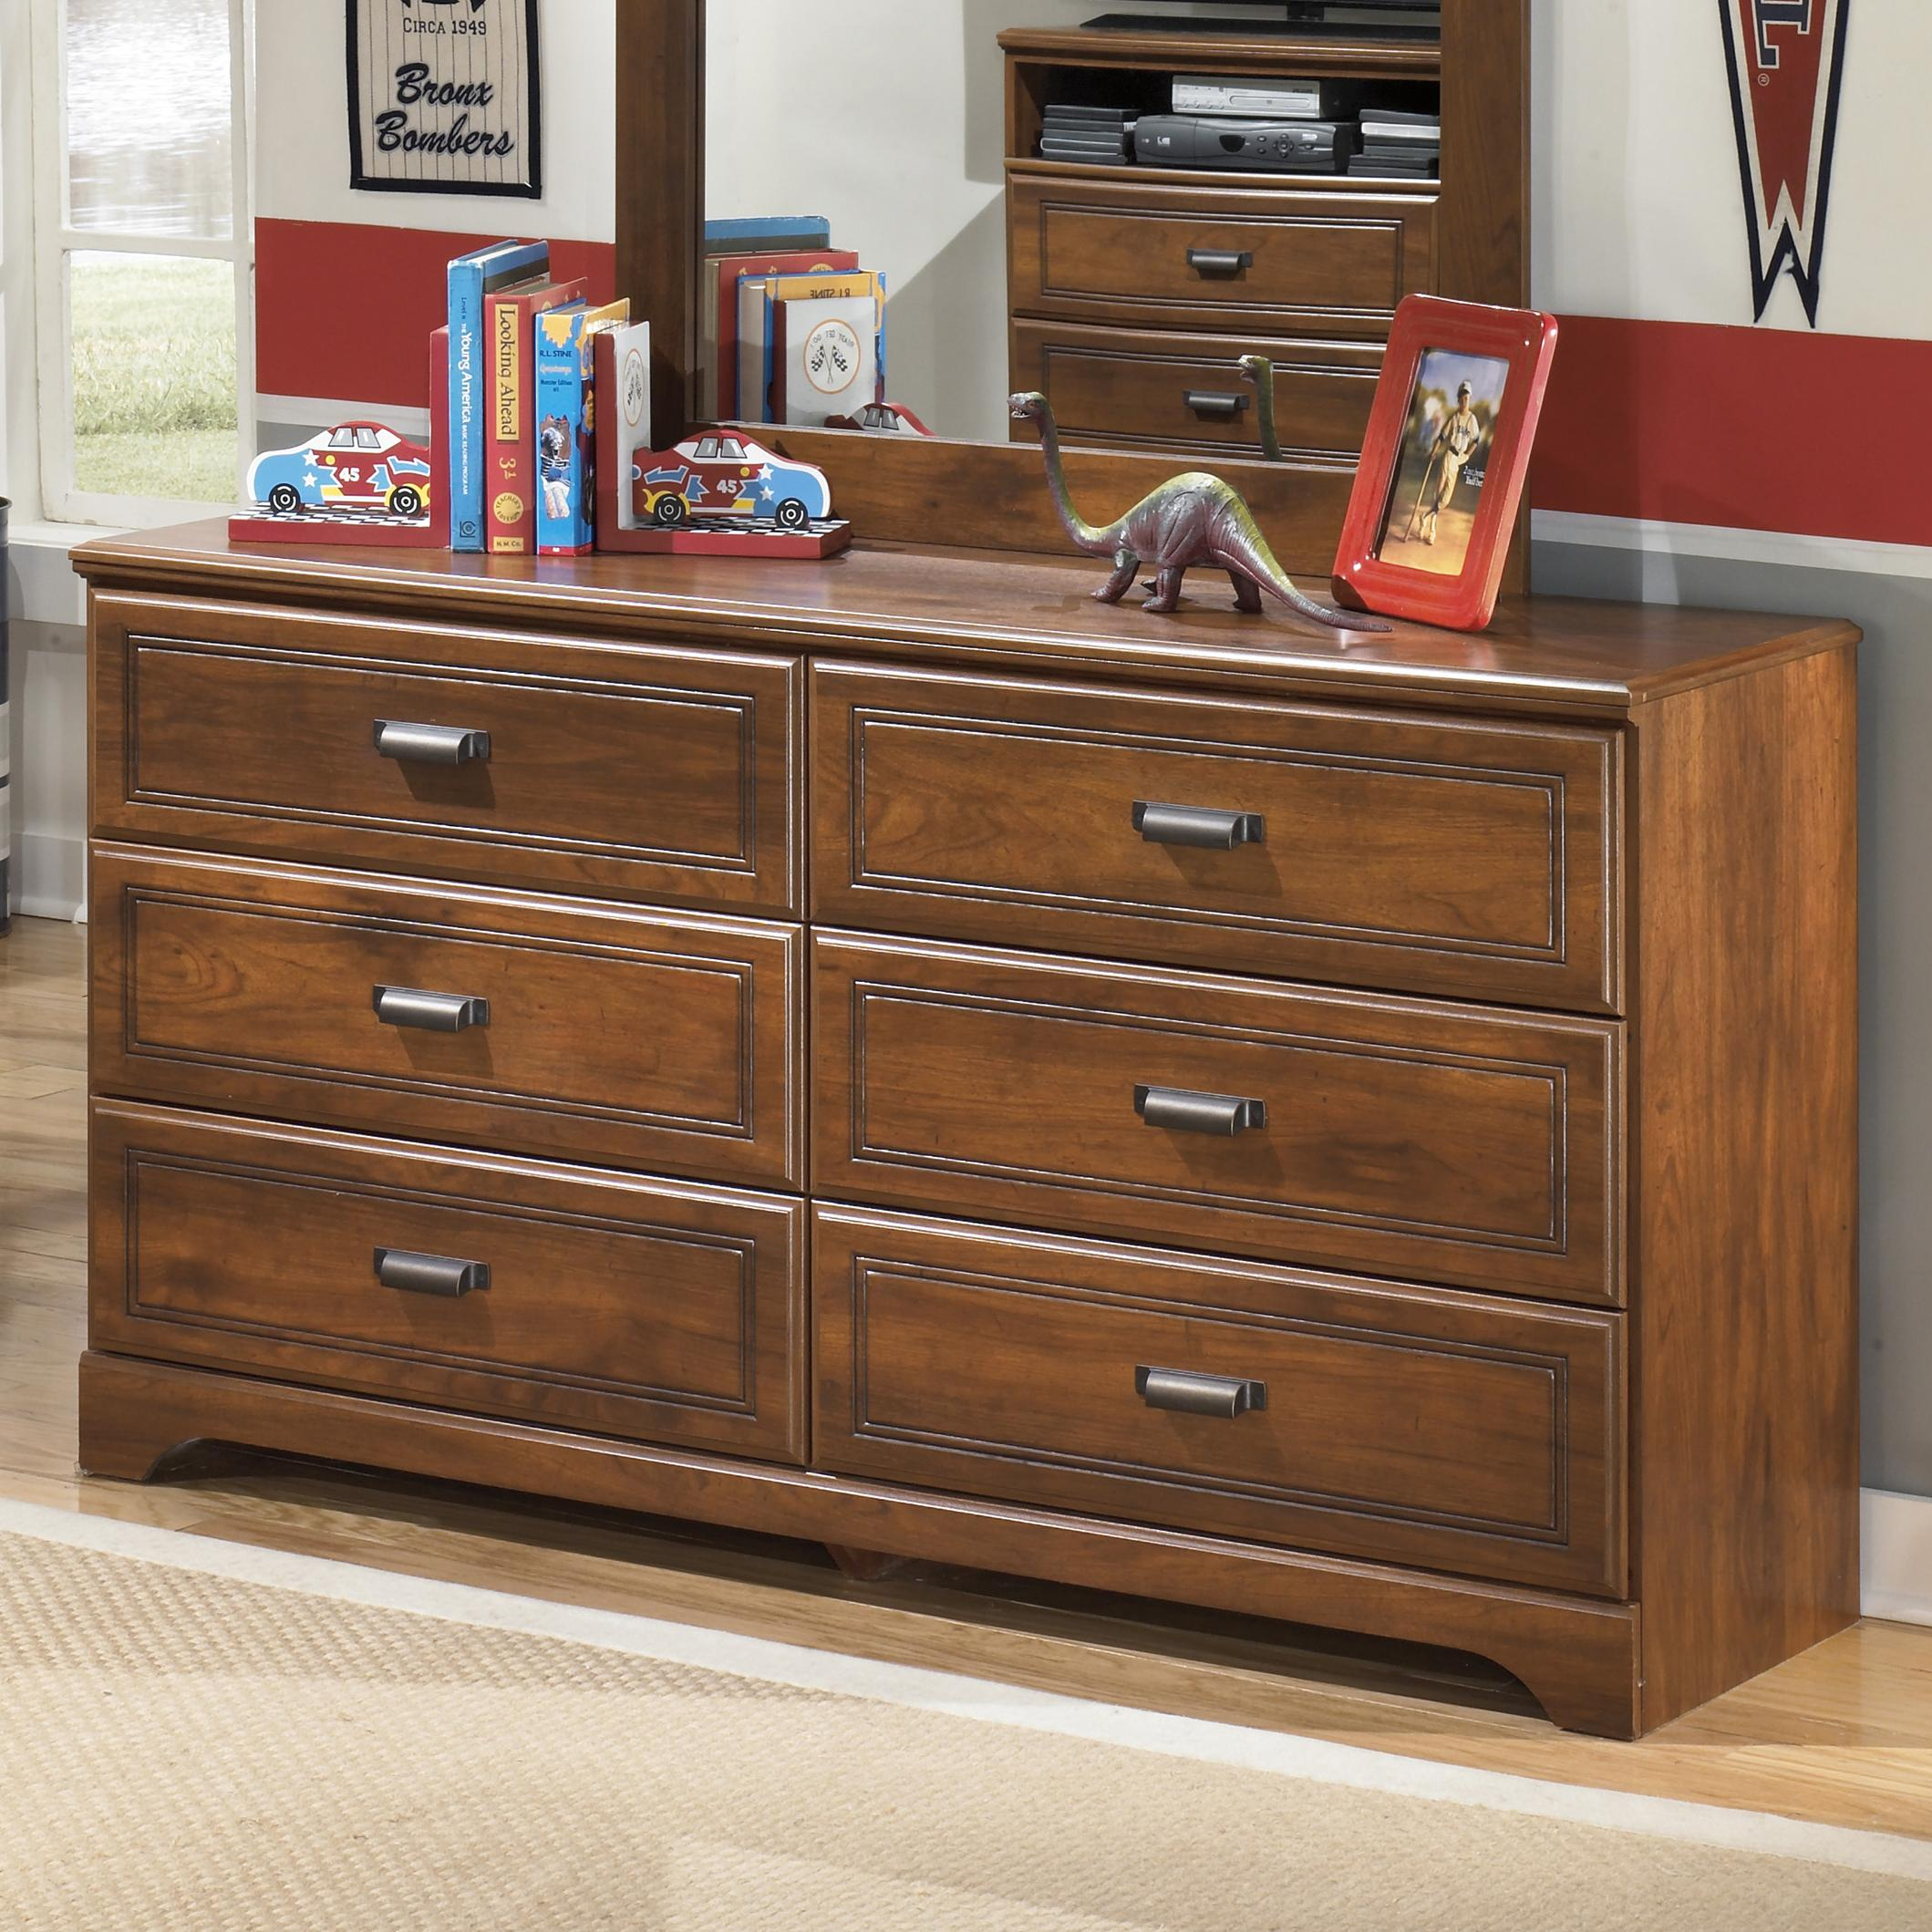 Signature Design by Ashley Barchan Dresser - Item Number: B228-21